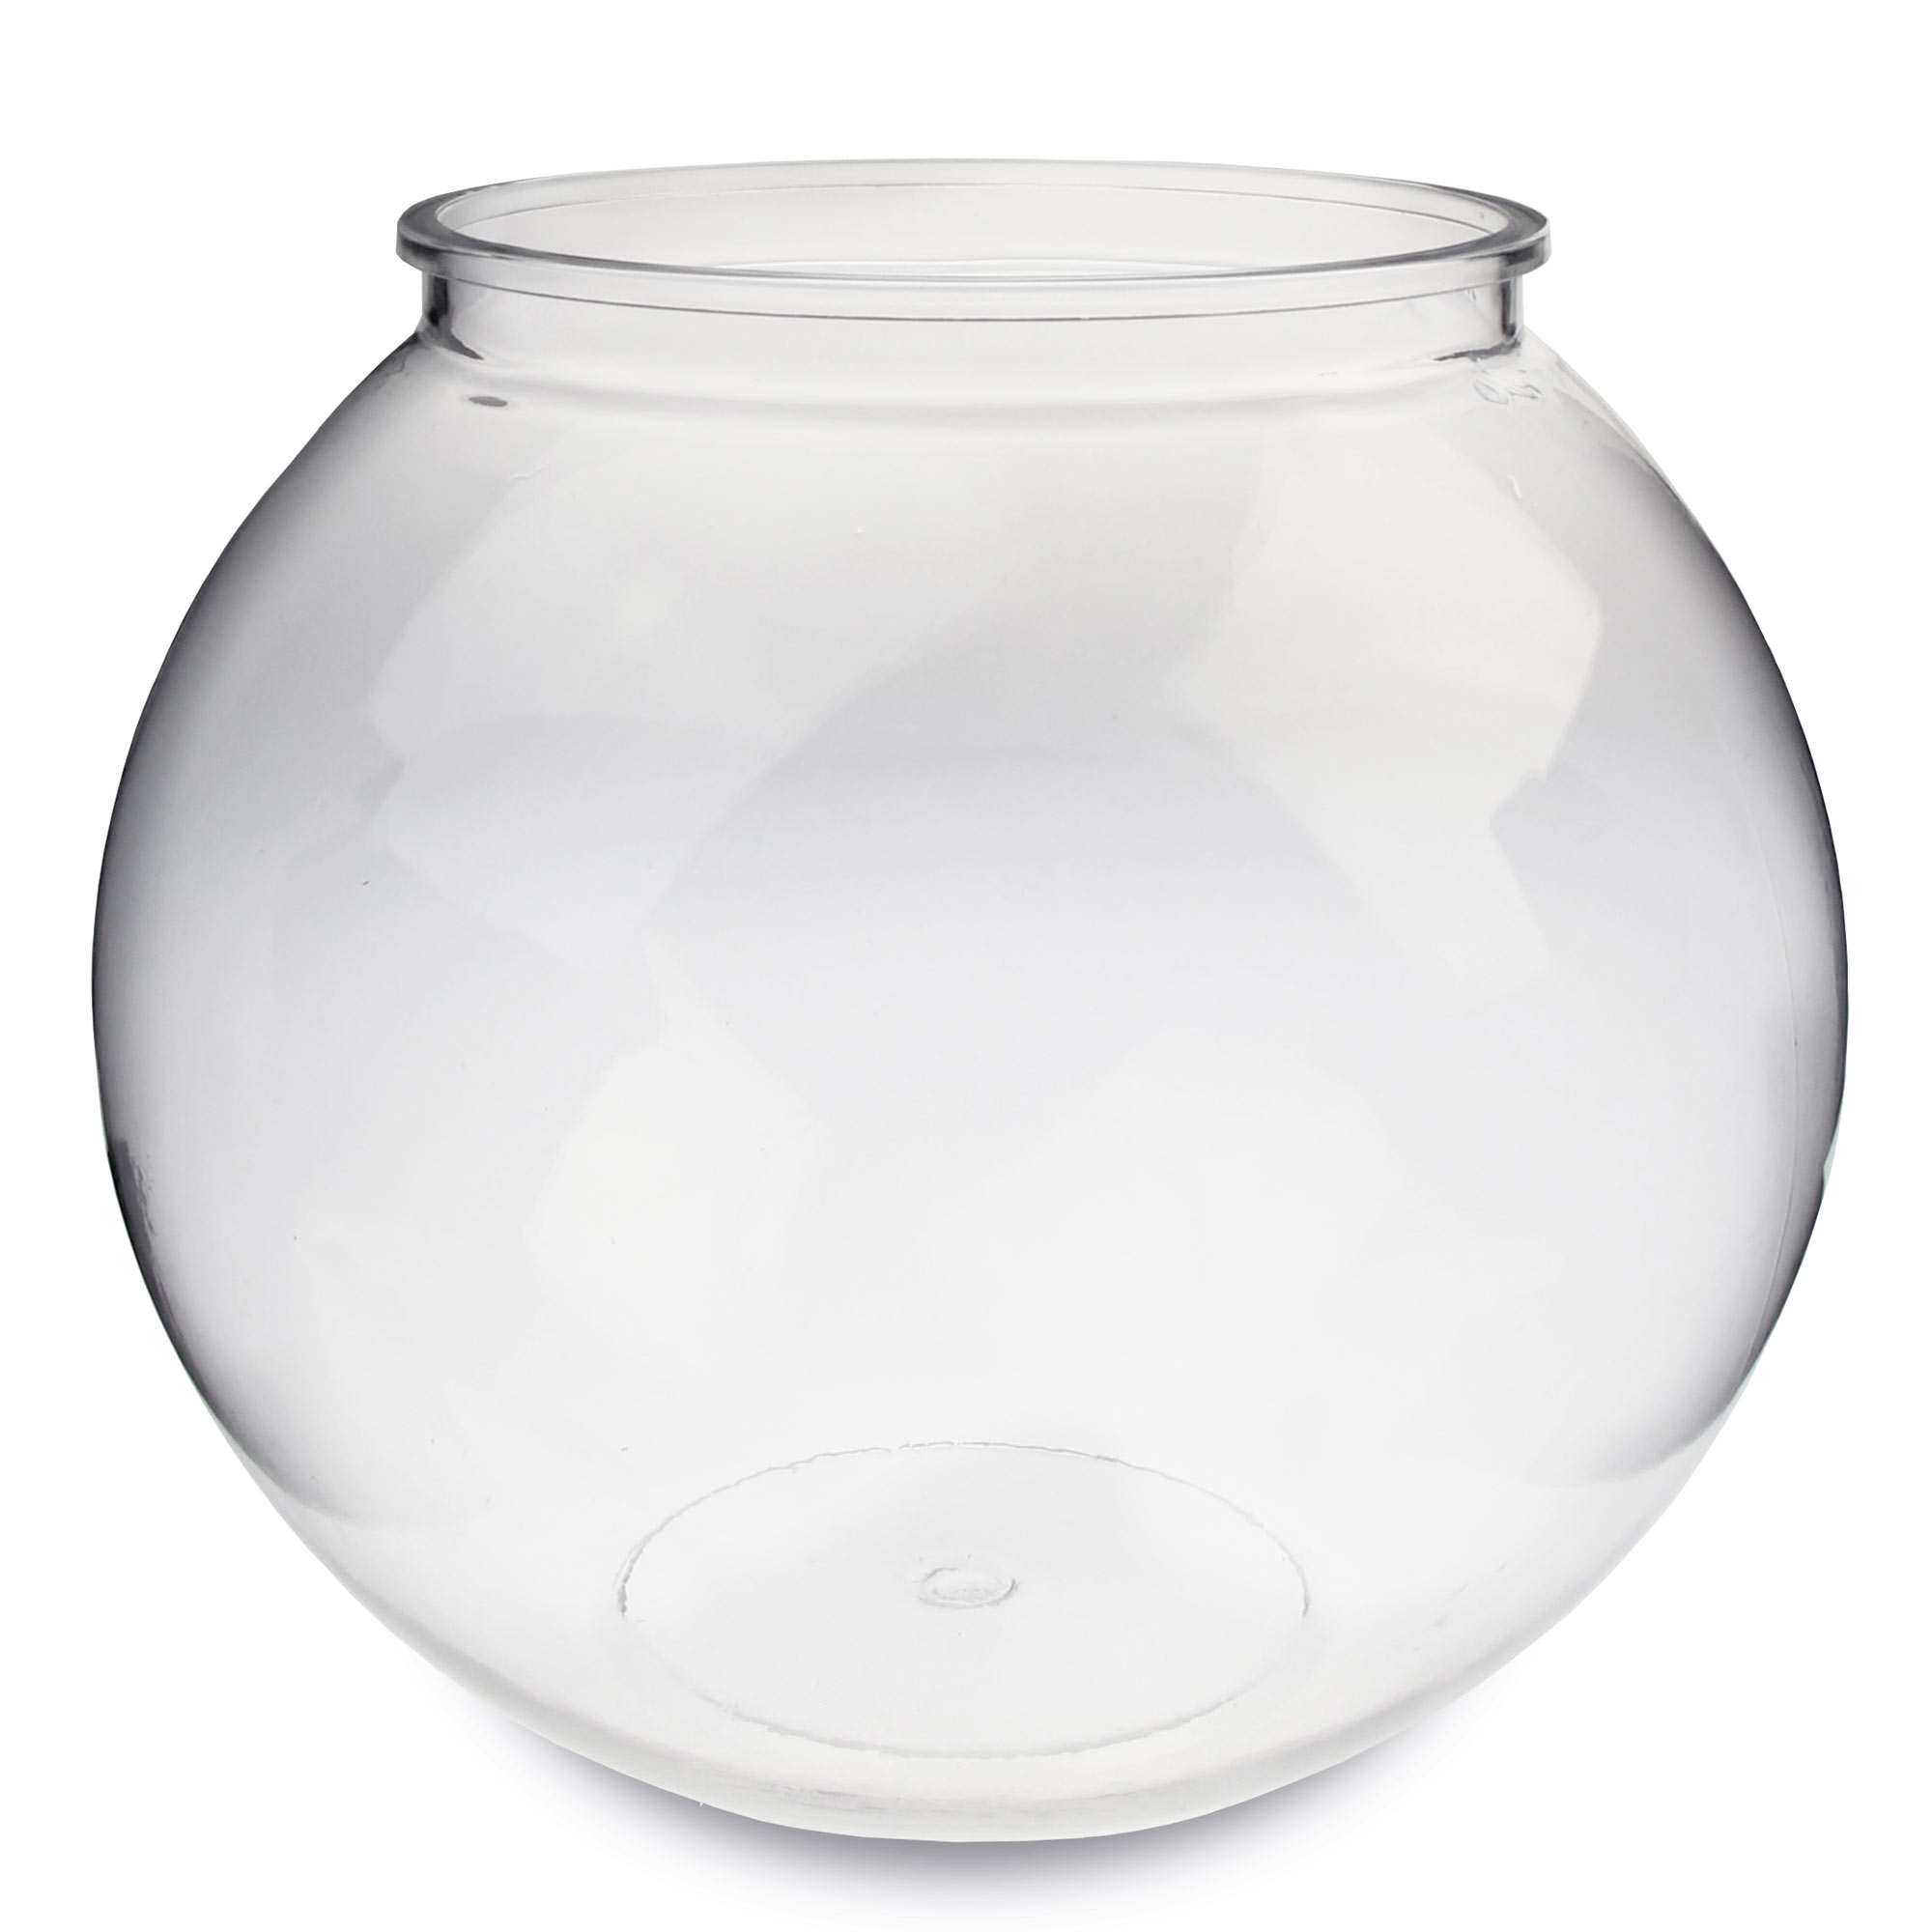 Xl 5 litre plastic cocktail fish bowl sharer at drinkstuff for Acrylic fish bowl